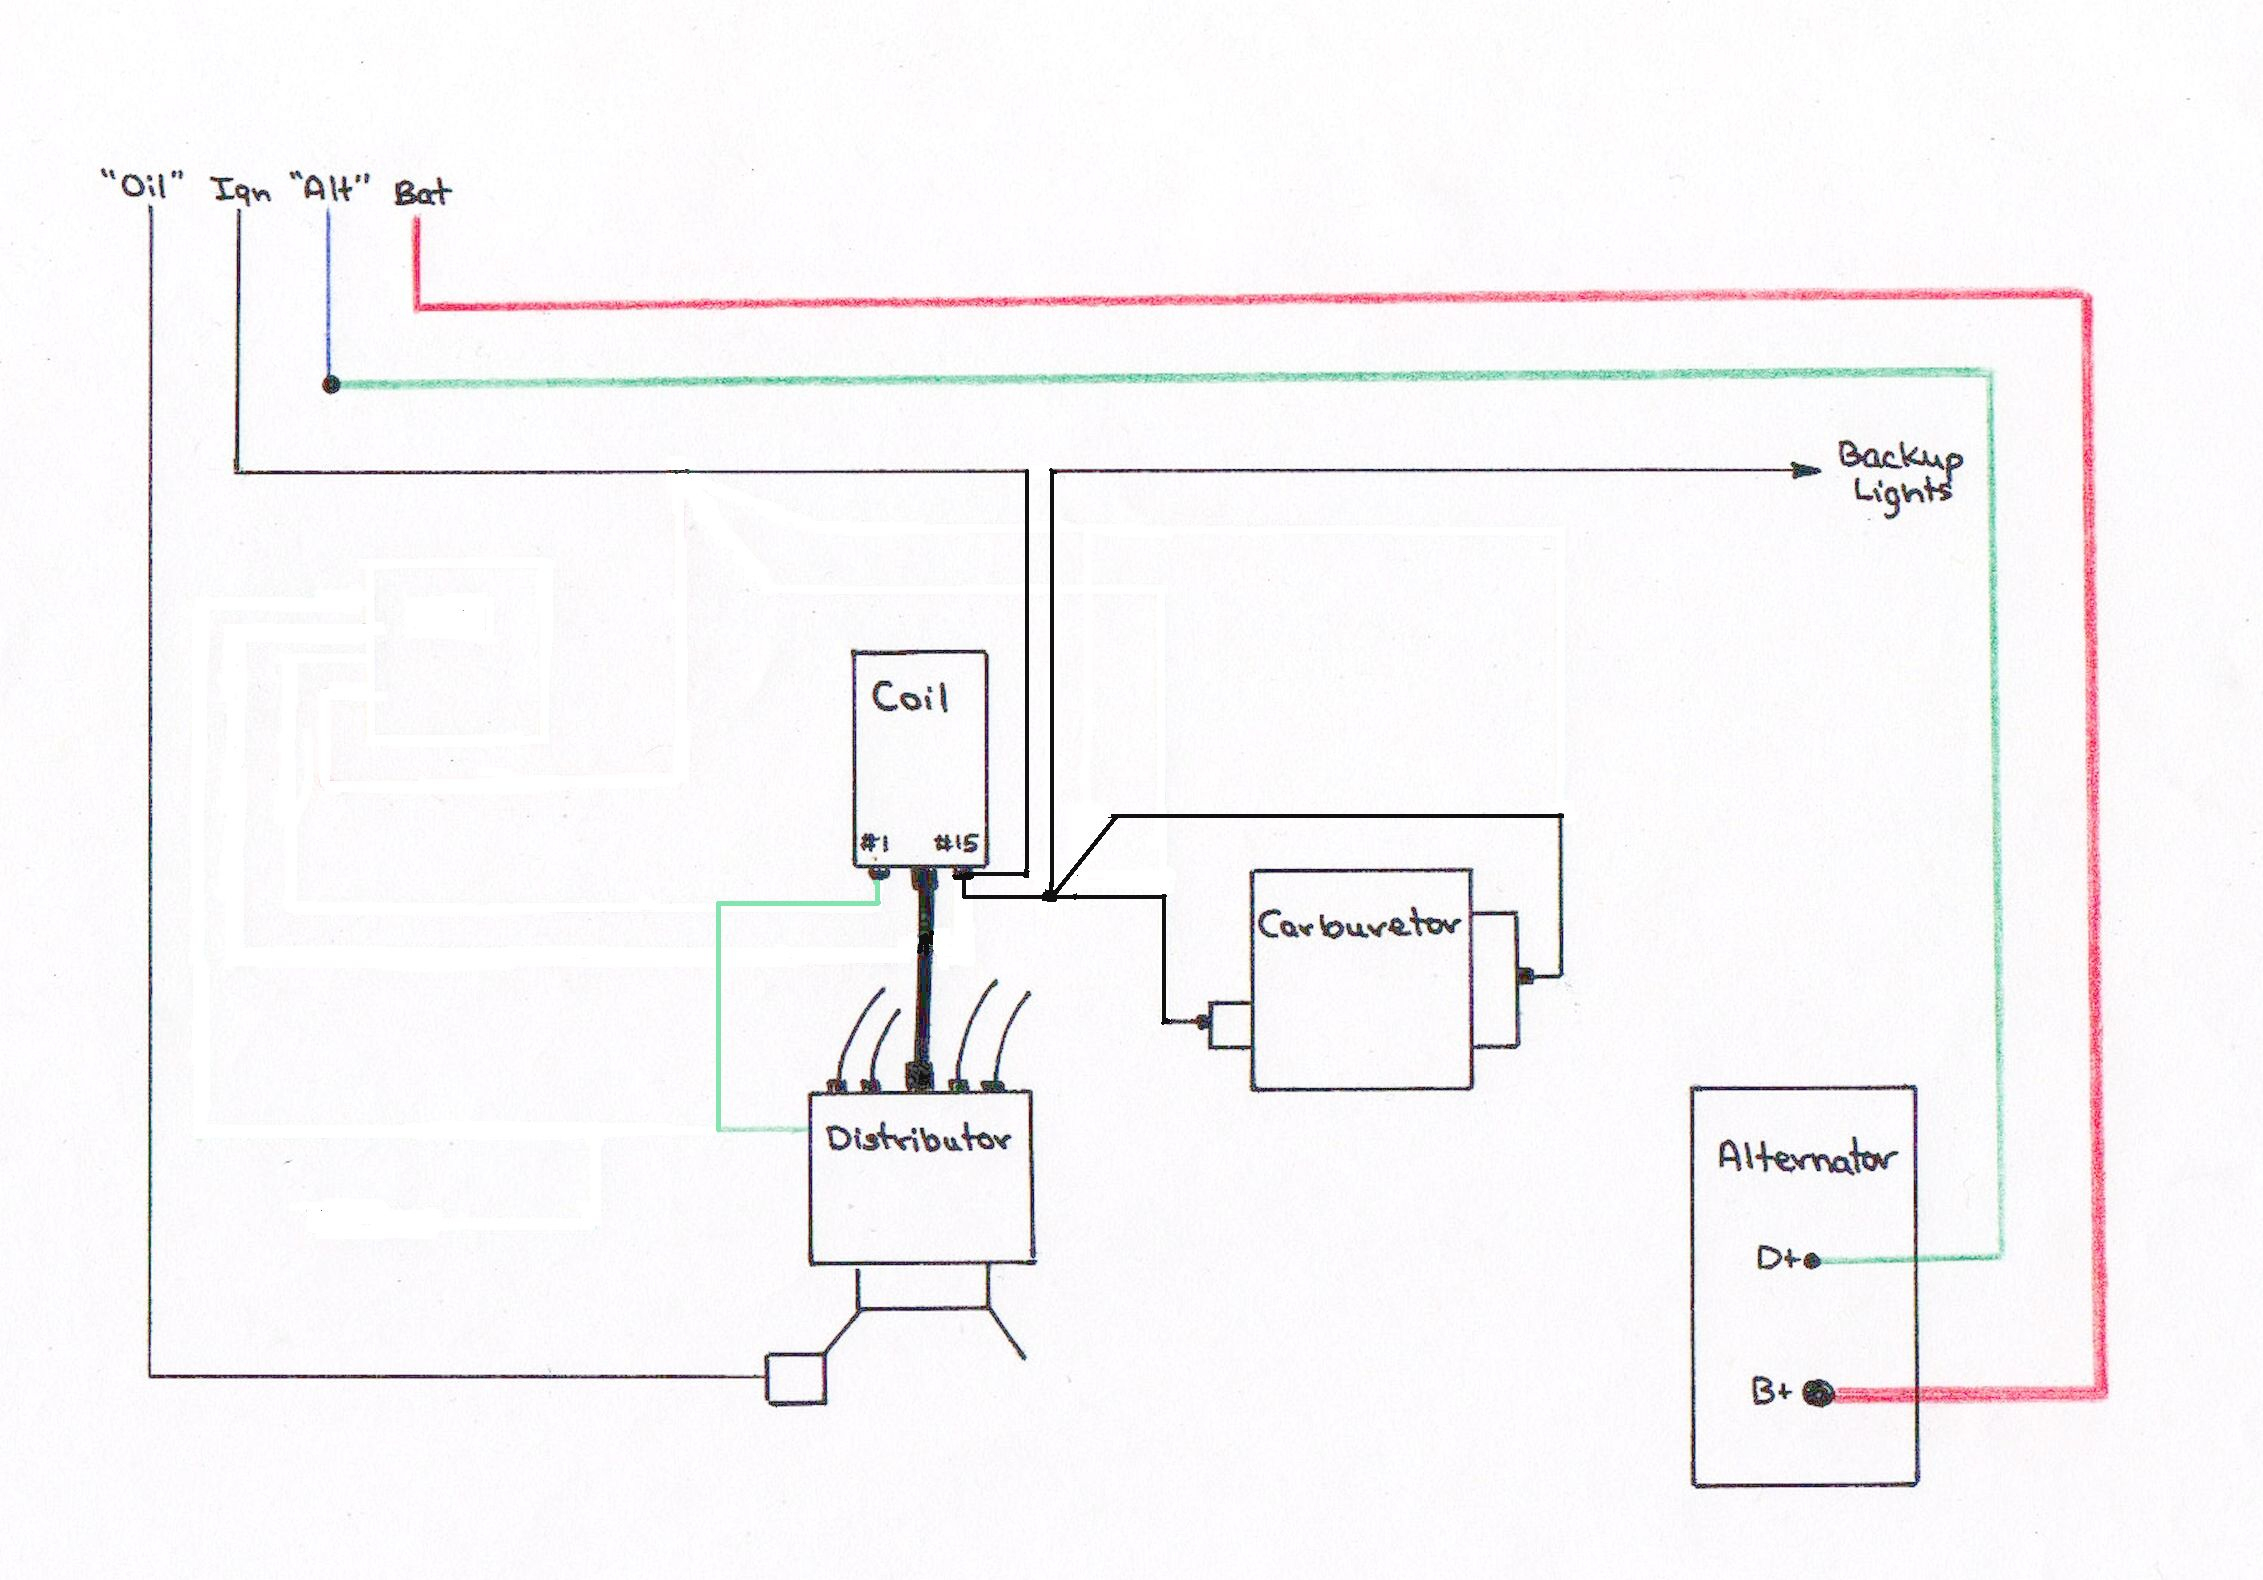 1946 Plymouth 6 Volt Positive Ground Wiring Diagram | Wiring Diagram - 6 Volt Positive Ground Wiring Diagram